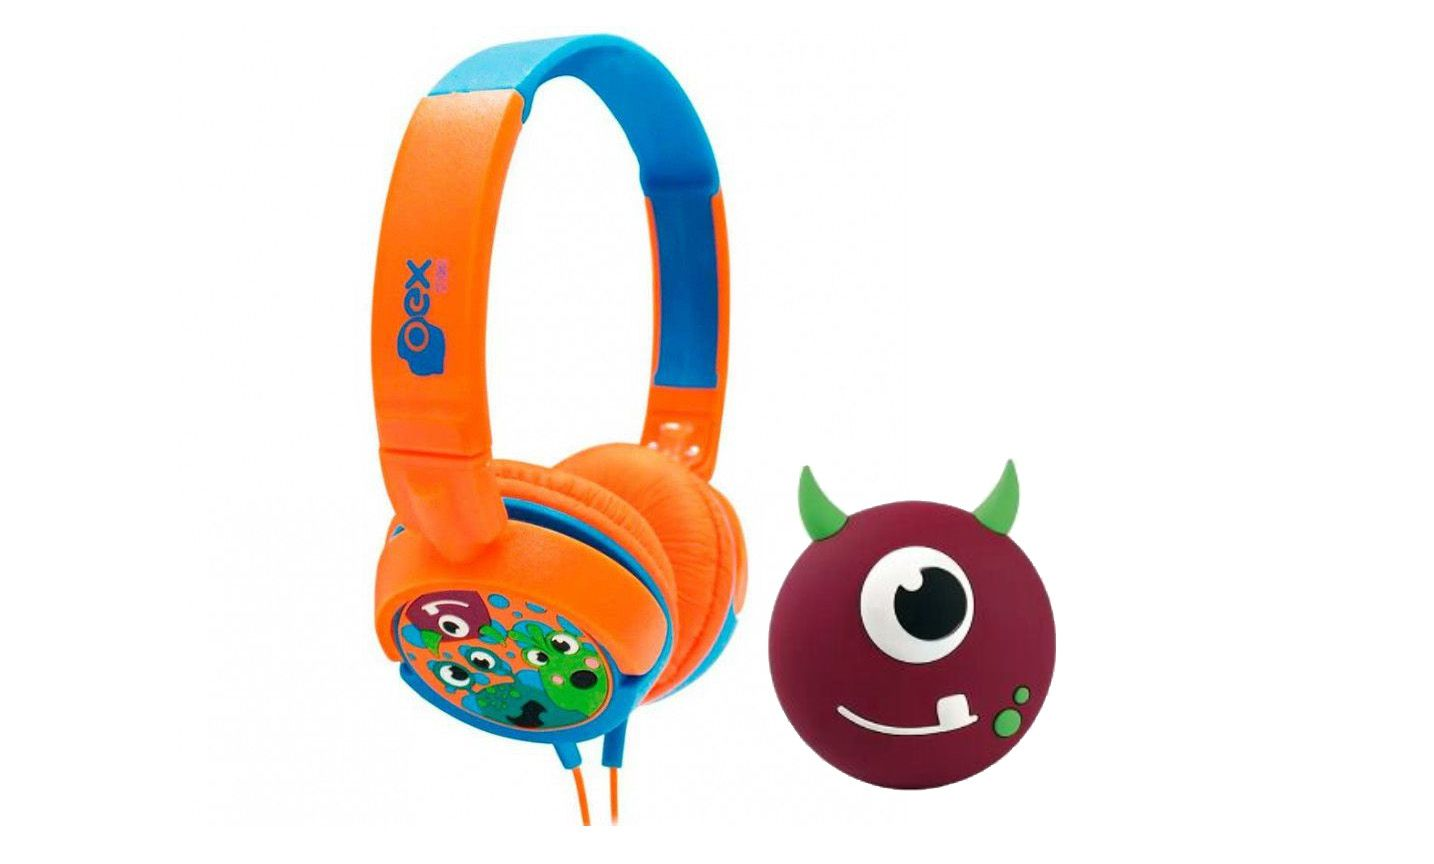 Caixinha Som Infantil Bluetooth Oex Boo Sk301 + Headphone Oex Boo Hp-301